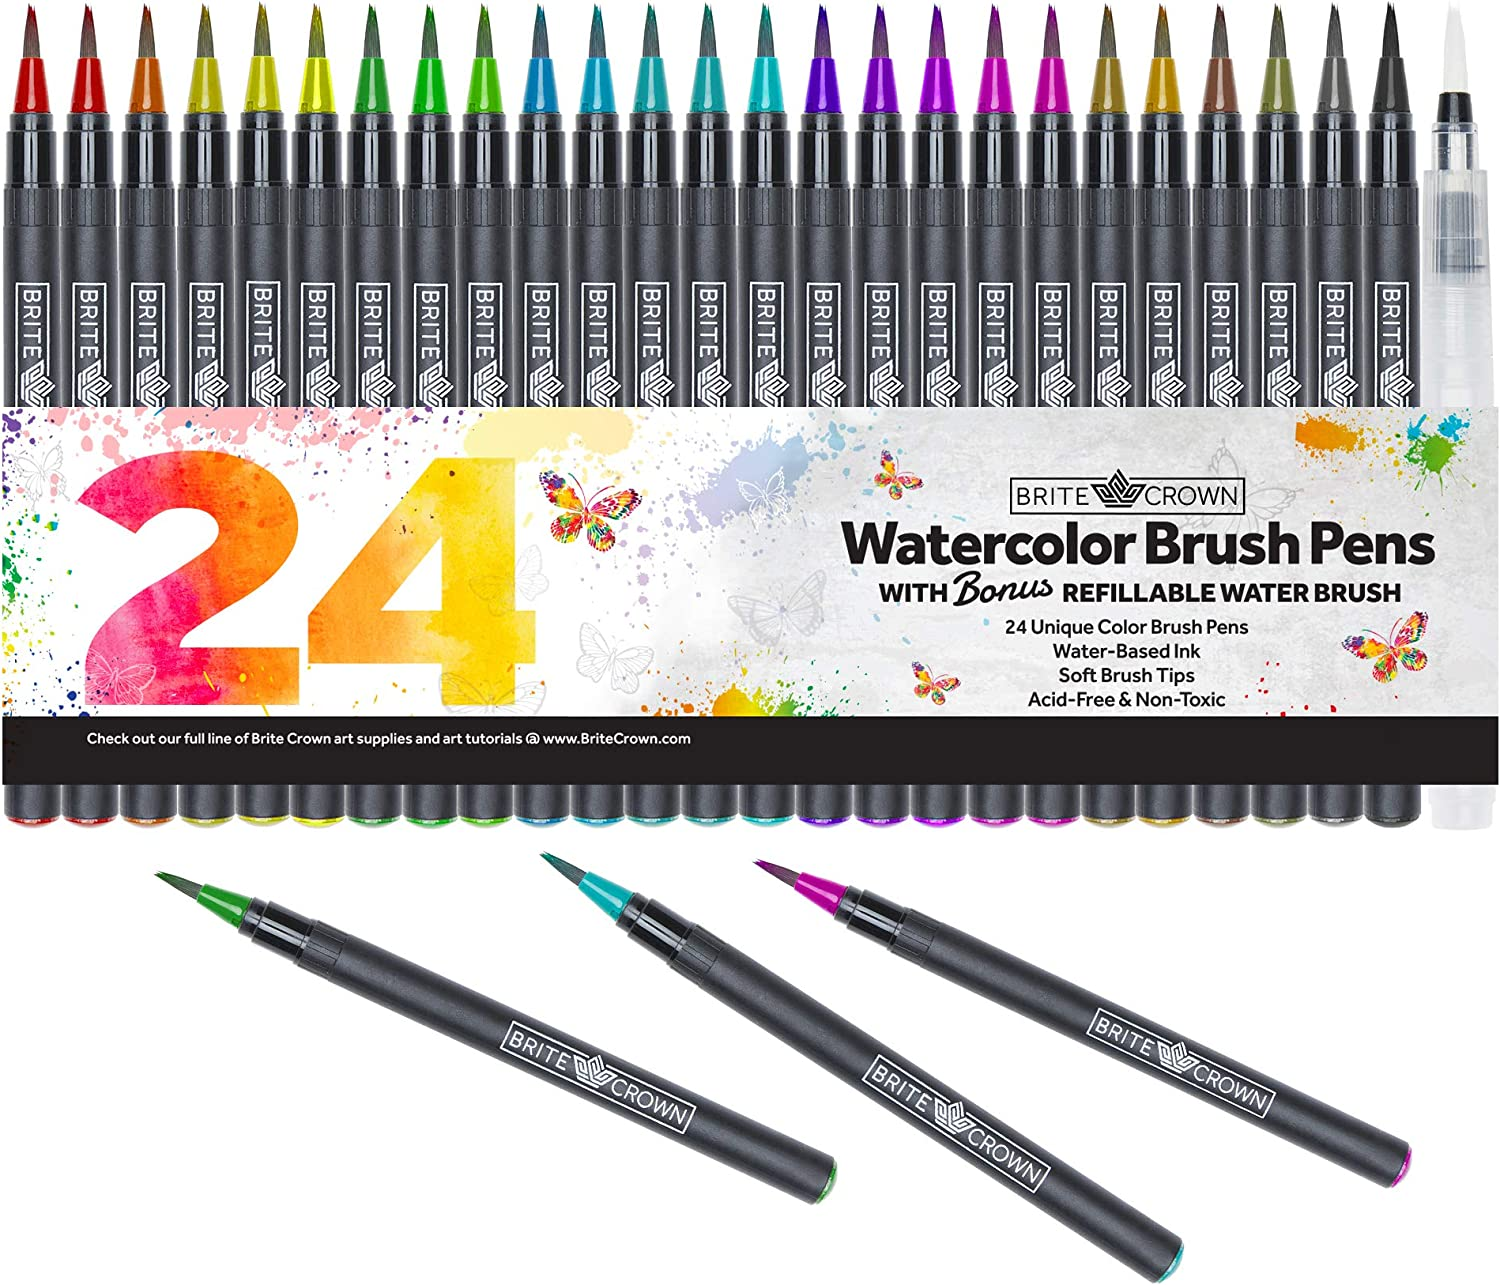 Watercolor Brush Pens – Includes 24 Colorful Watercolor Markers (Flexible Nylon Brush Tips) with 1 Refillable Water Blending Brush | Watercolor Paint Pens Art Supplies for Teens, Kids and Adults